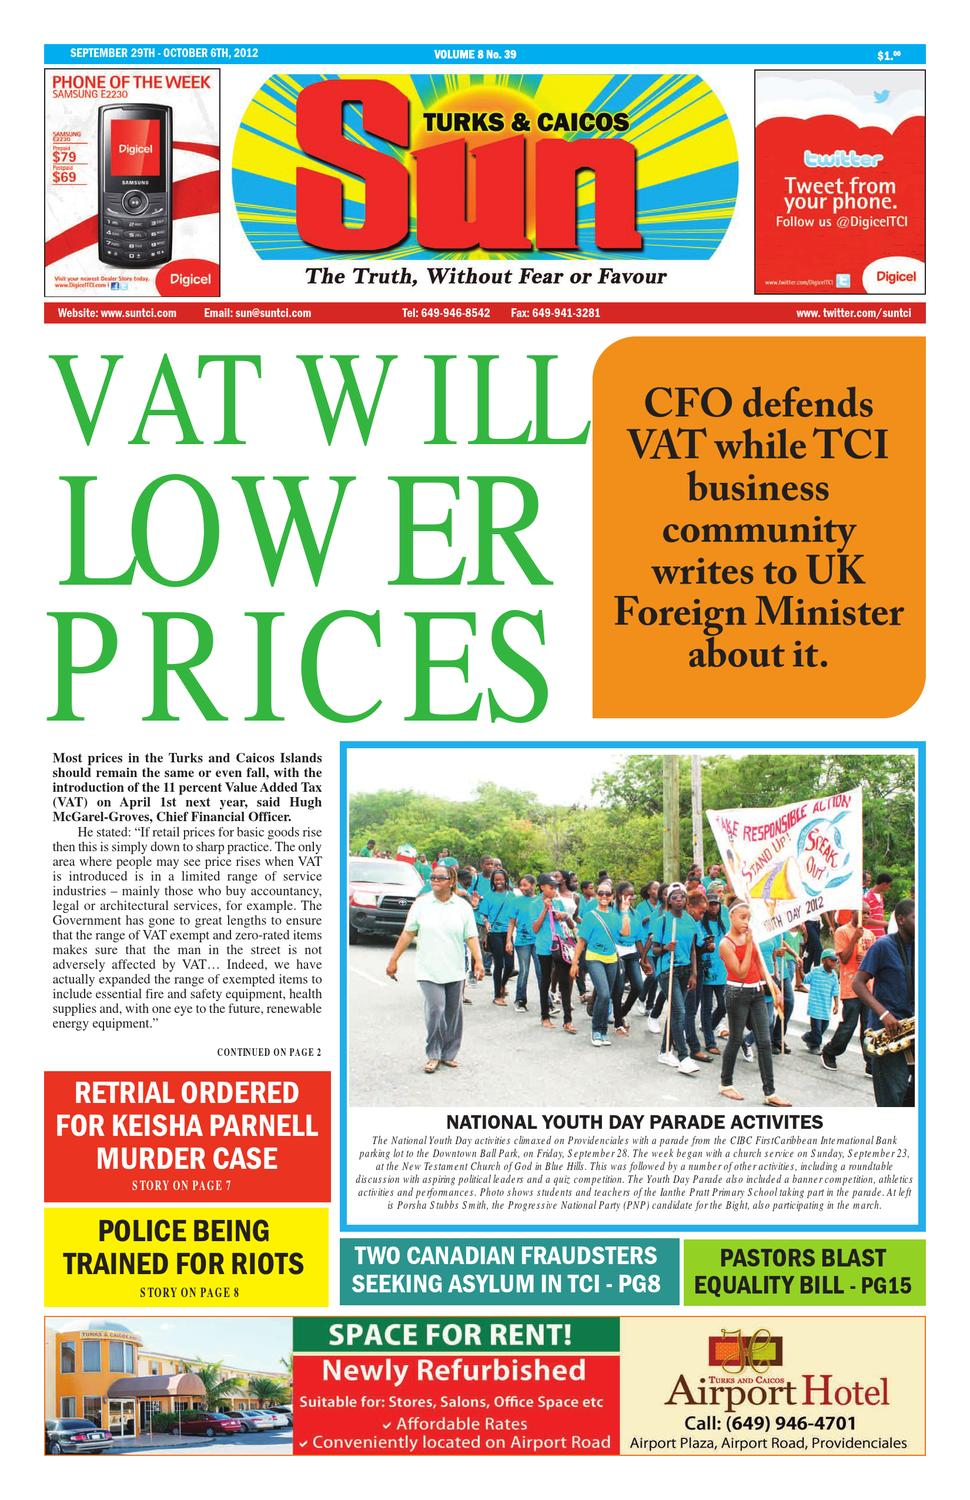 Volume 8 Issue 39 by The SUN Newspaper - issuu